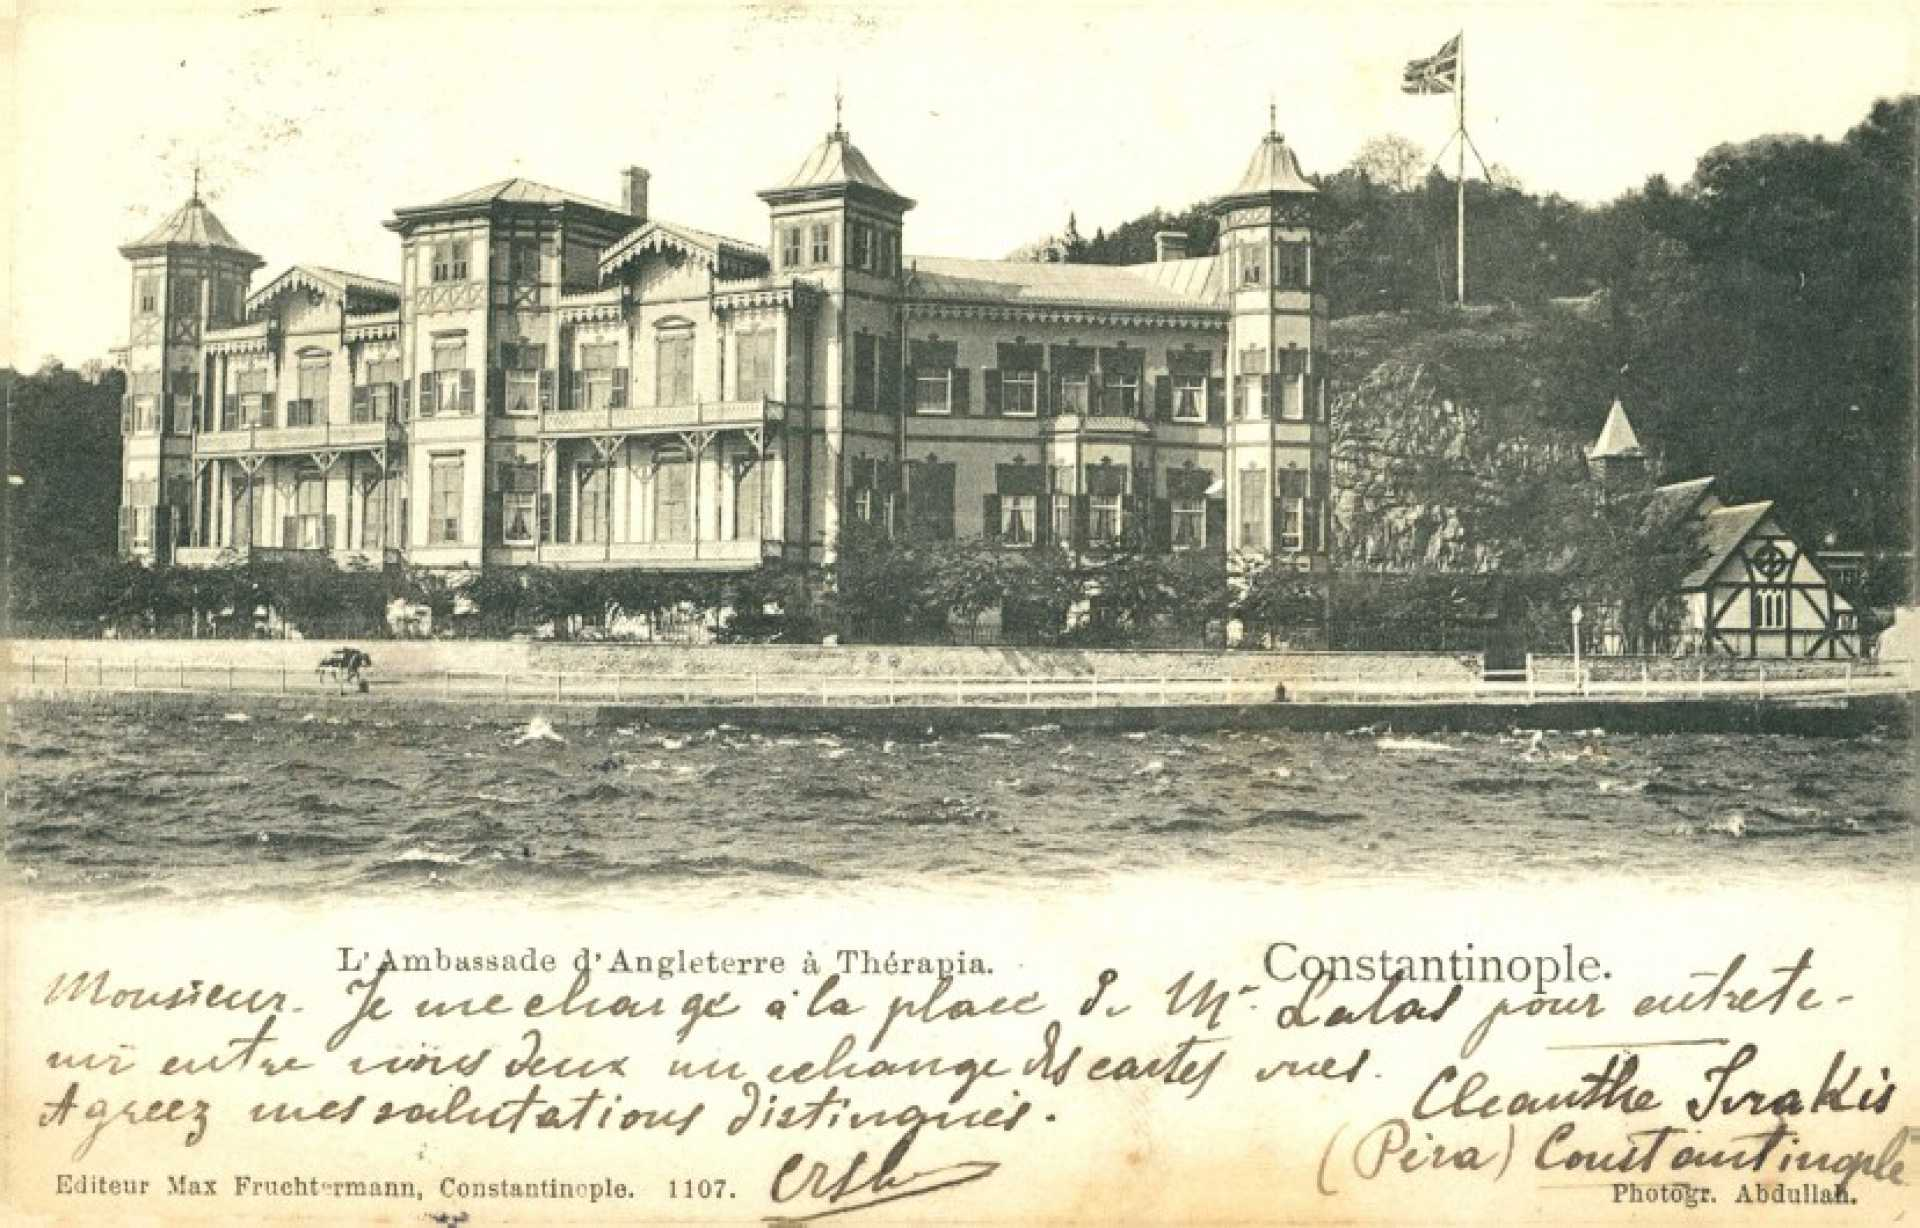 L'Ambassade d'Angleterre a Therapia. Constantinople